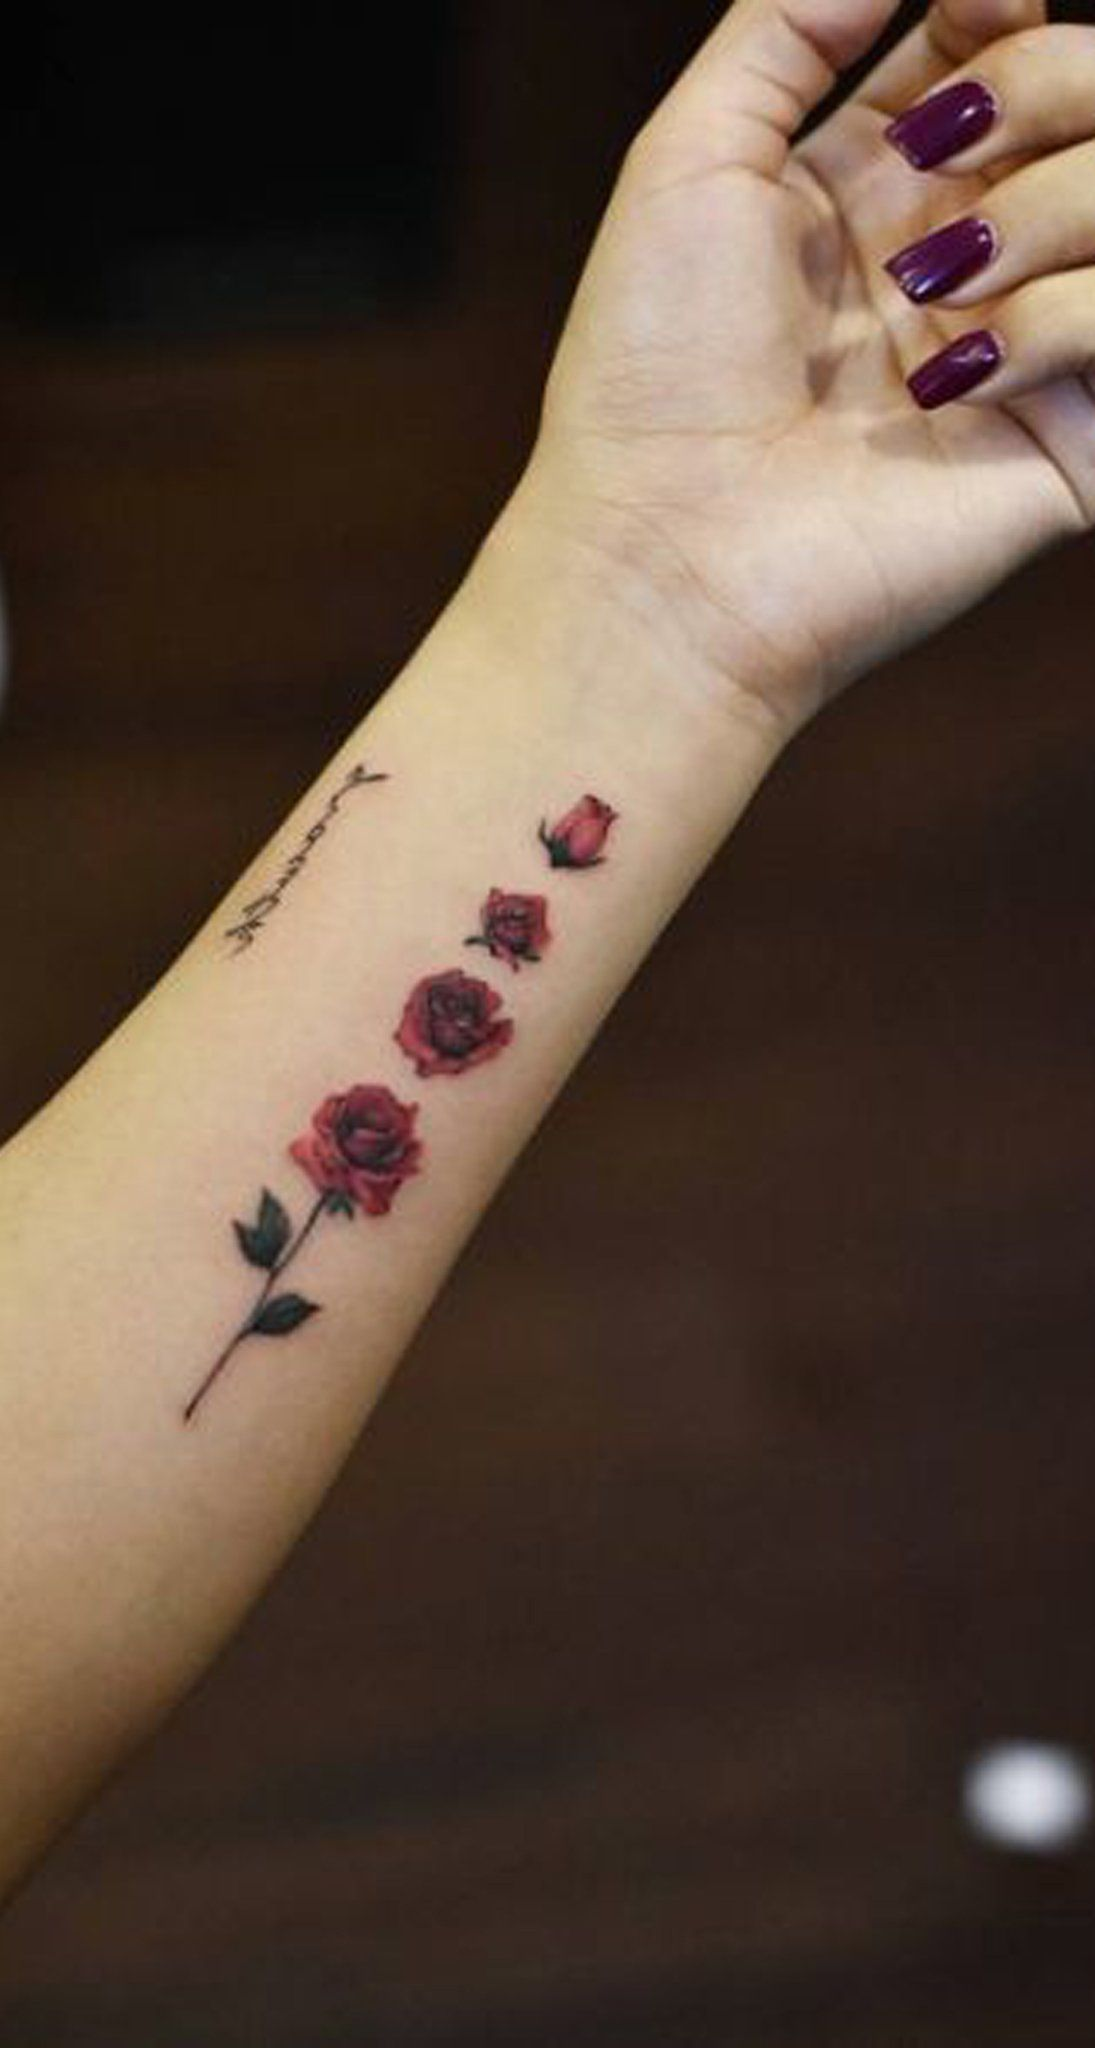 c95c6fbf7 Unique Rose Arm Tattoo Ideas for Teenagers - Cool Special Floral Flower  Watercolor Forearm Tat -